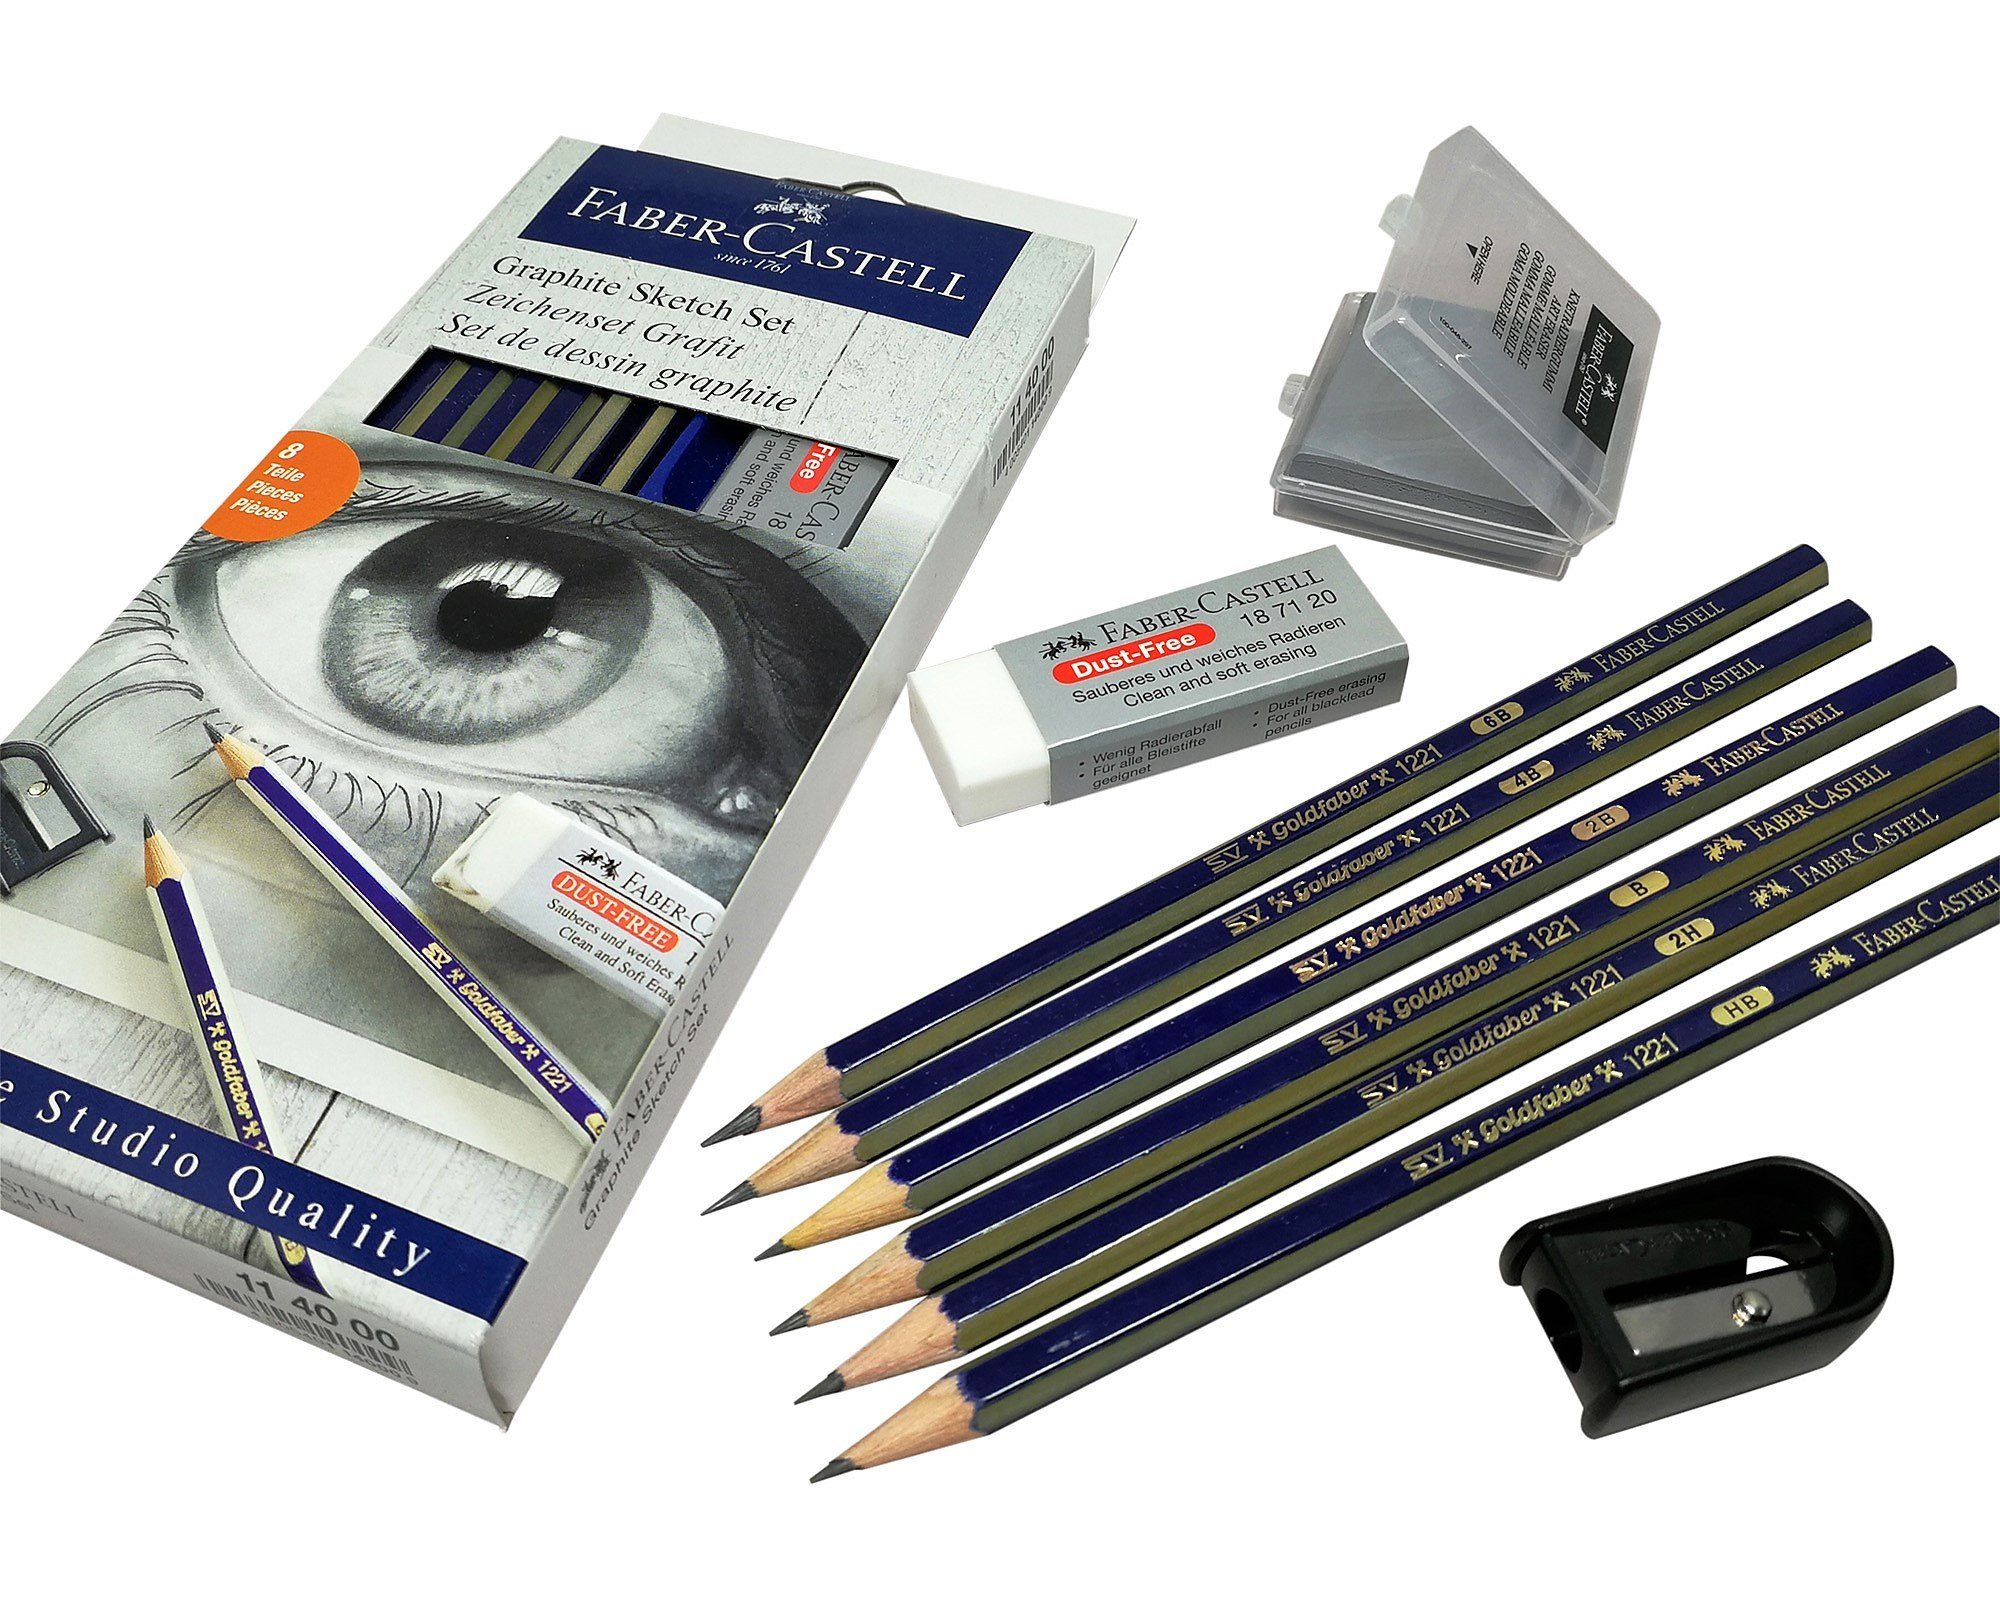 Faber-Castell pencils, 2B, 2H, HB, 4B, 6B, B graphite art pencils set with eraser, Kneaded eraser, pencil Sharpener for sketch, drawing and sketching